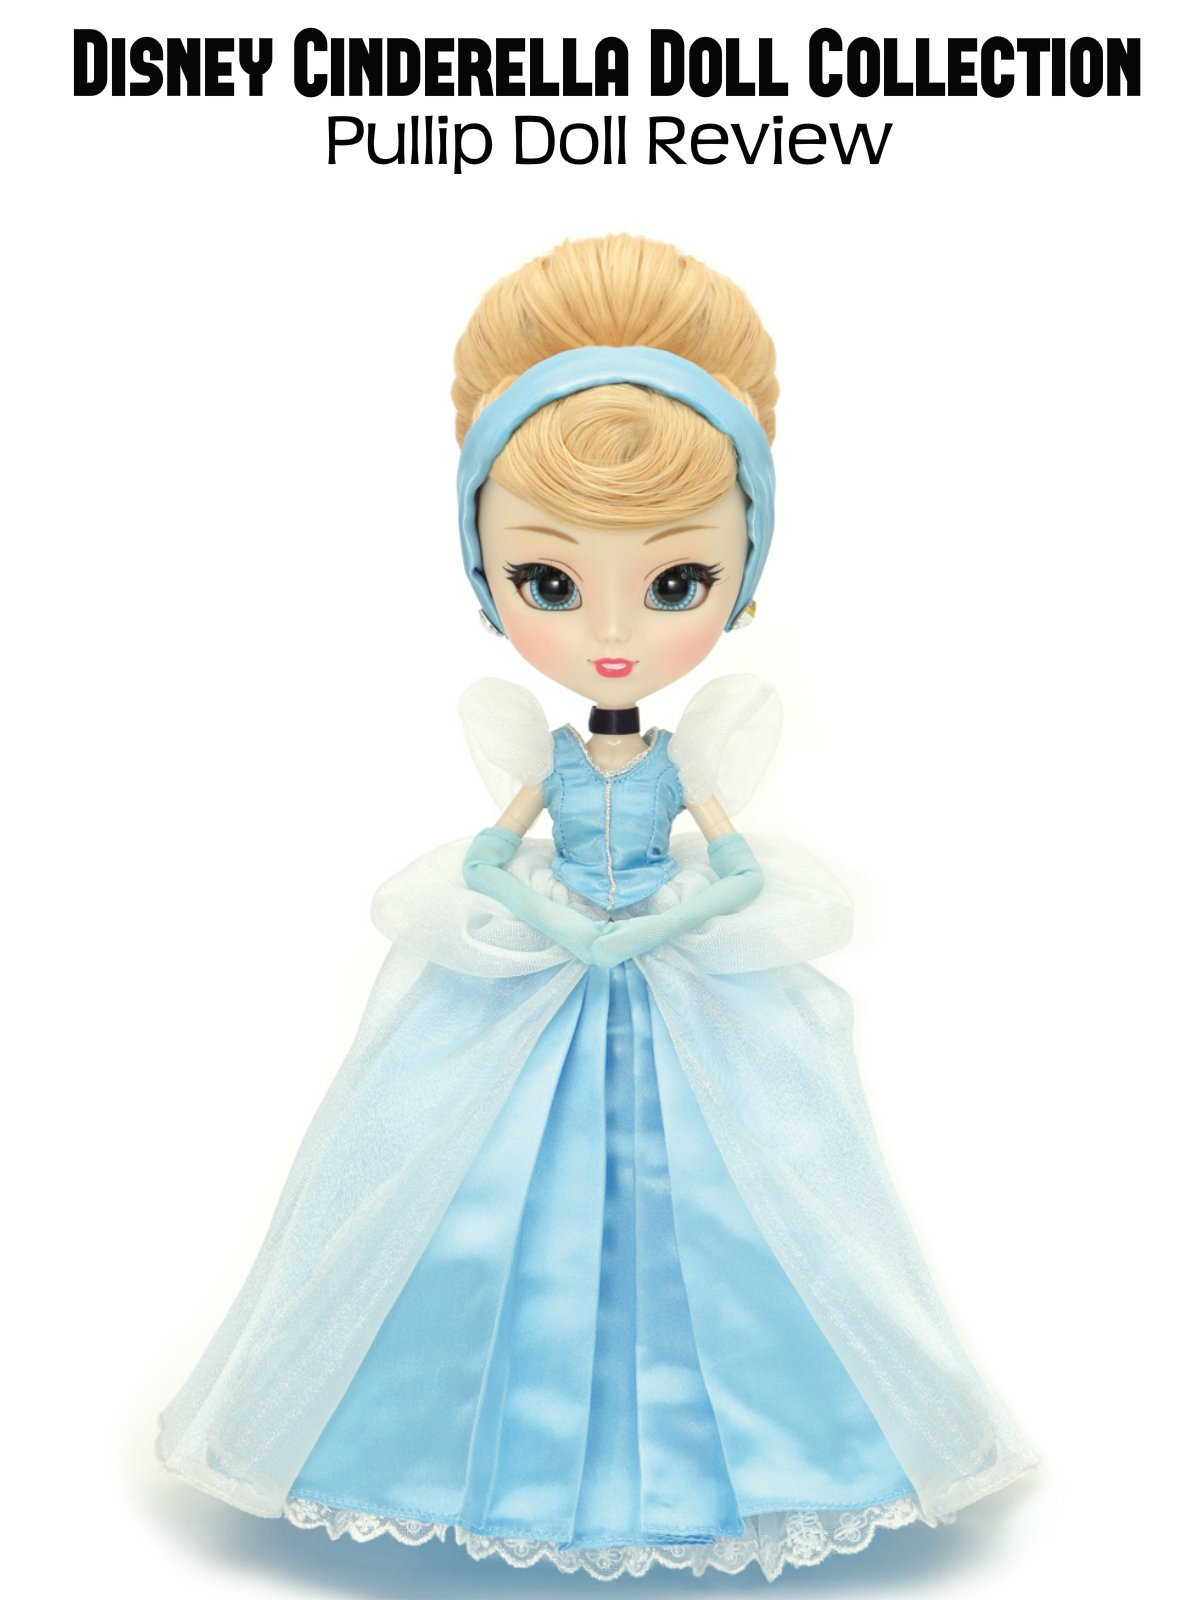 Review: Disney Cinderella Doll Collection Pullip Doll Review on Amazon Prime Video UK